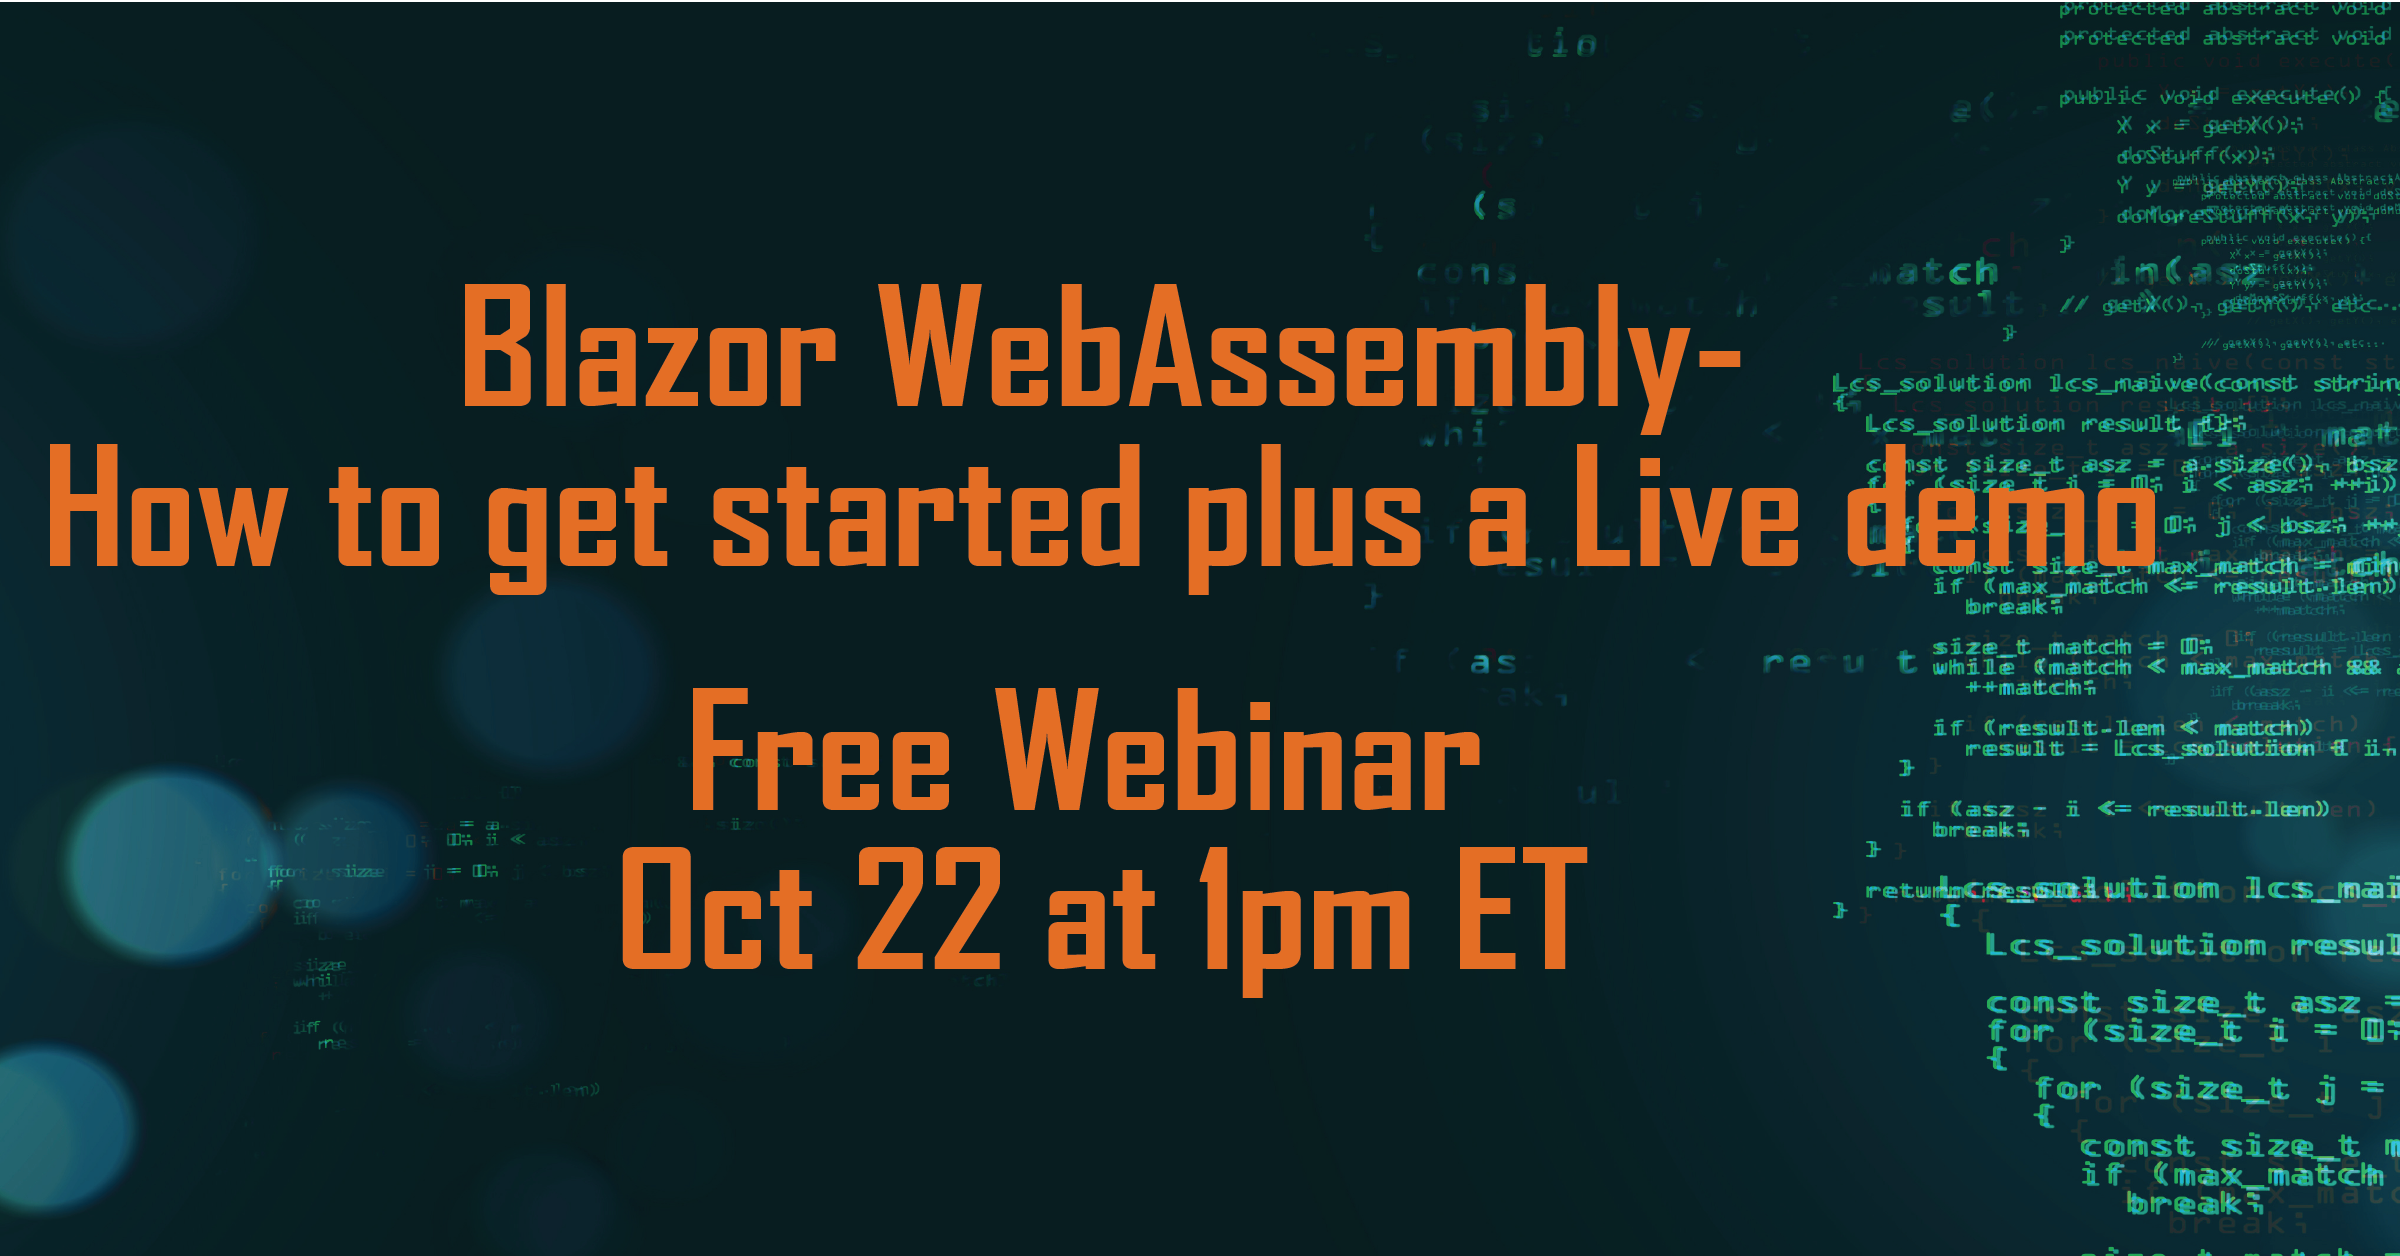 Blazor WebAssembly – How to get started plus a Live demo